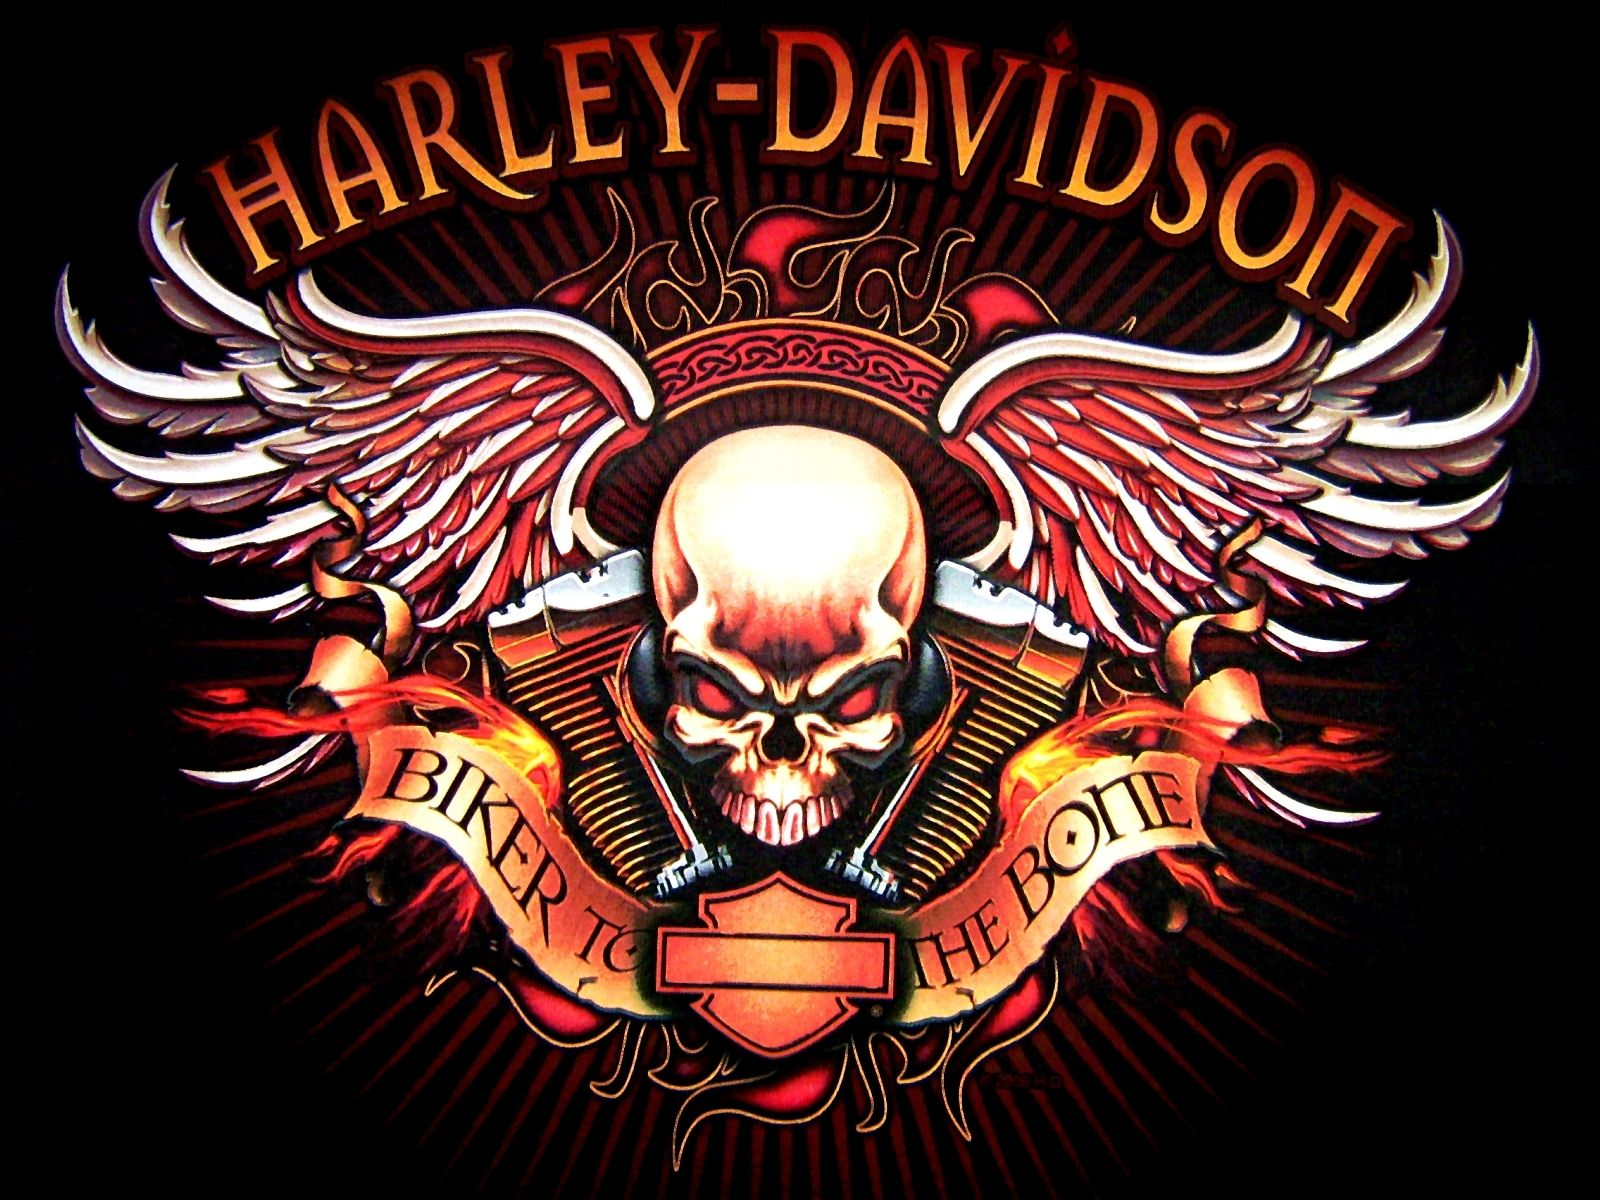 Hd Skull Wallpapers Harley Davidson Logo Skull Bikes Motorcycle Wallpaper Background Harley Davidson Wallpaper Harley Davidson Logo Harley Davidson Art